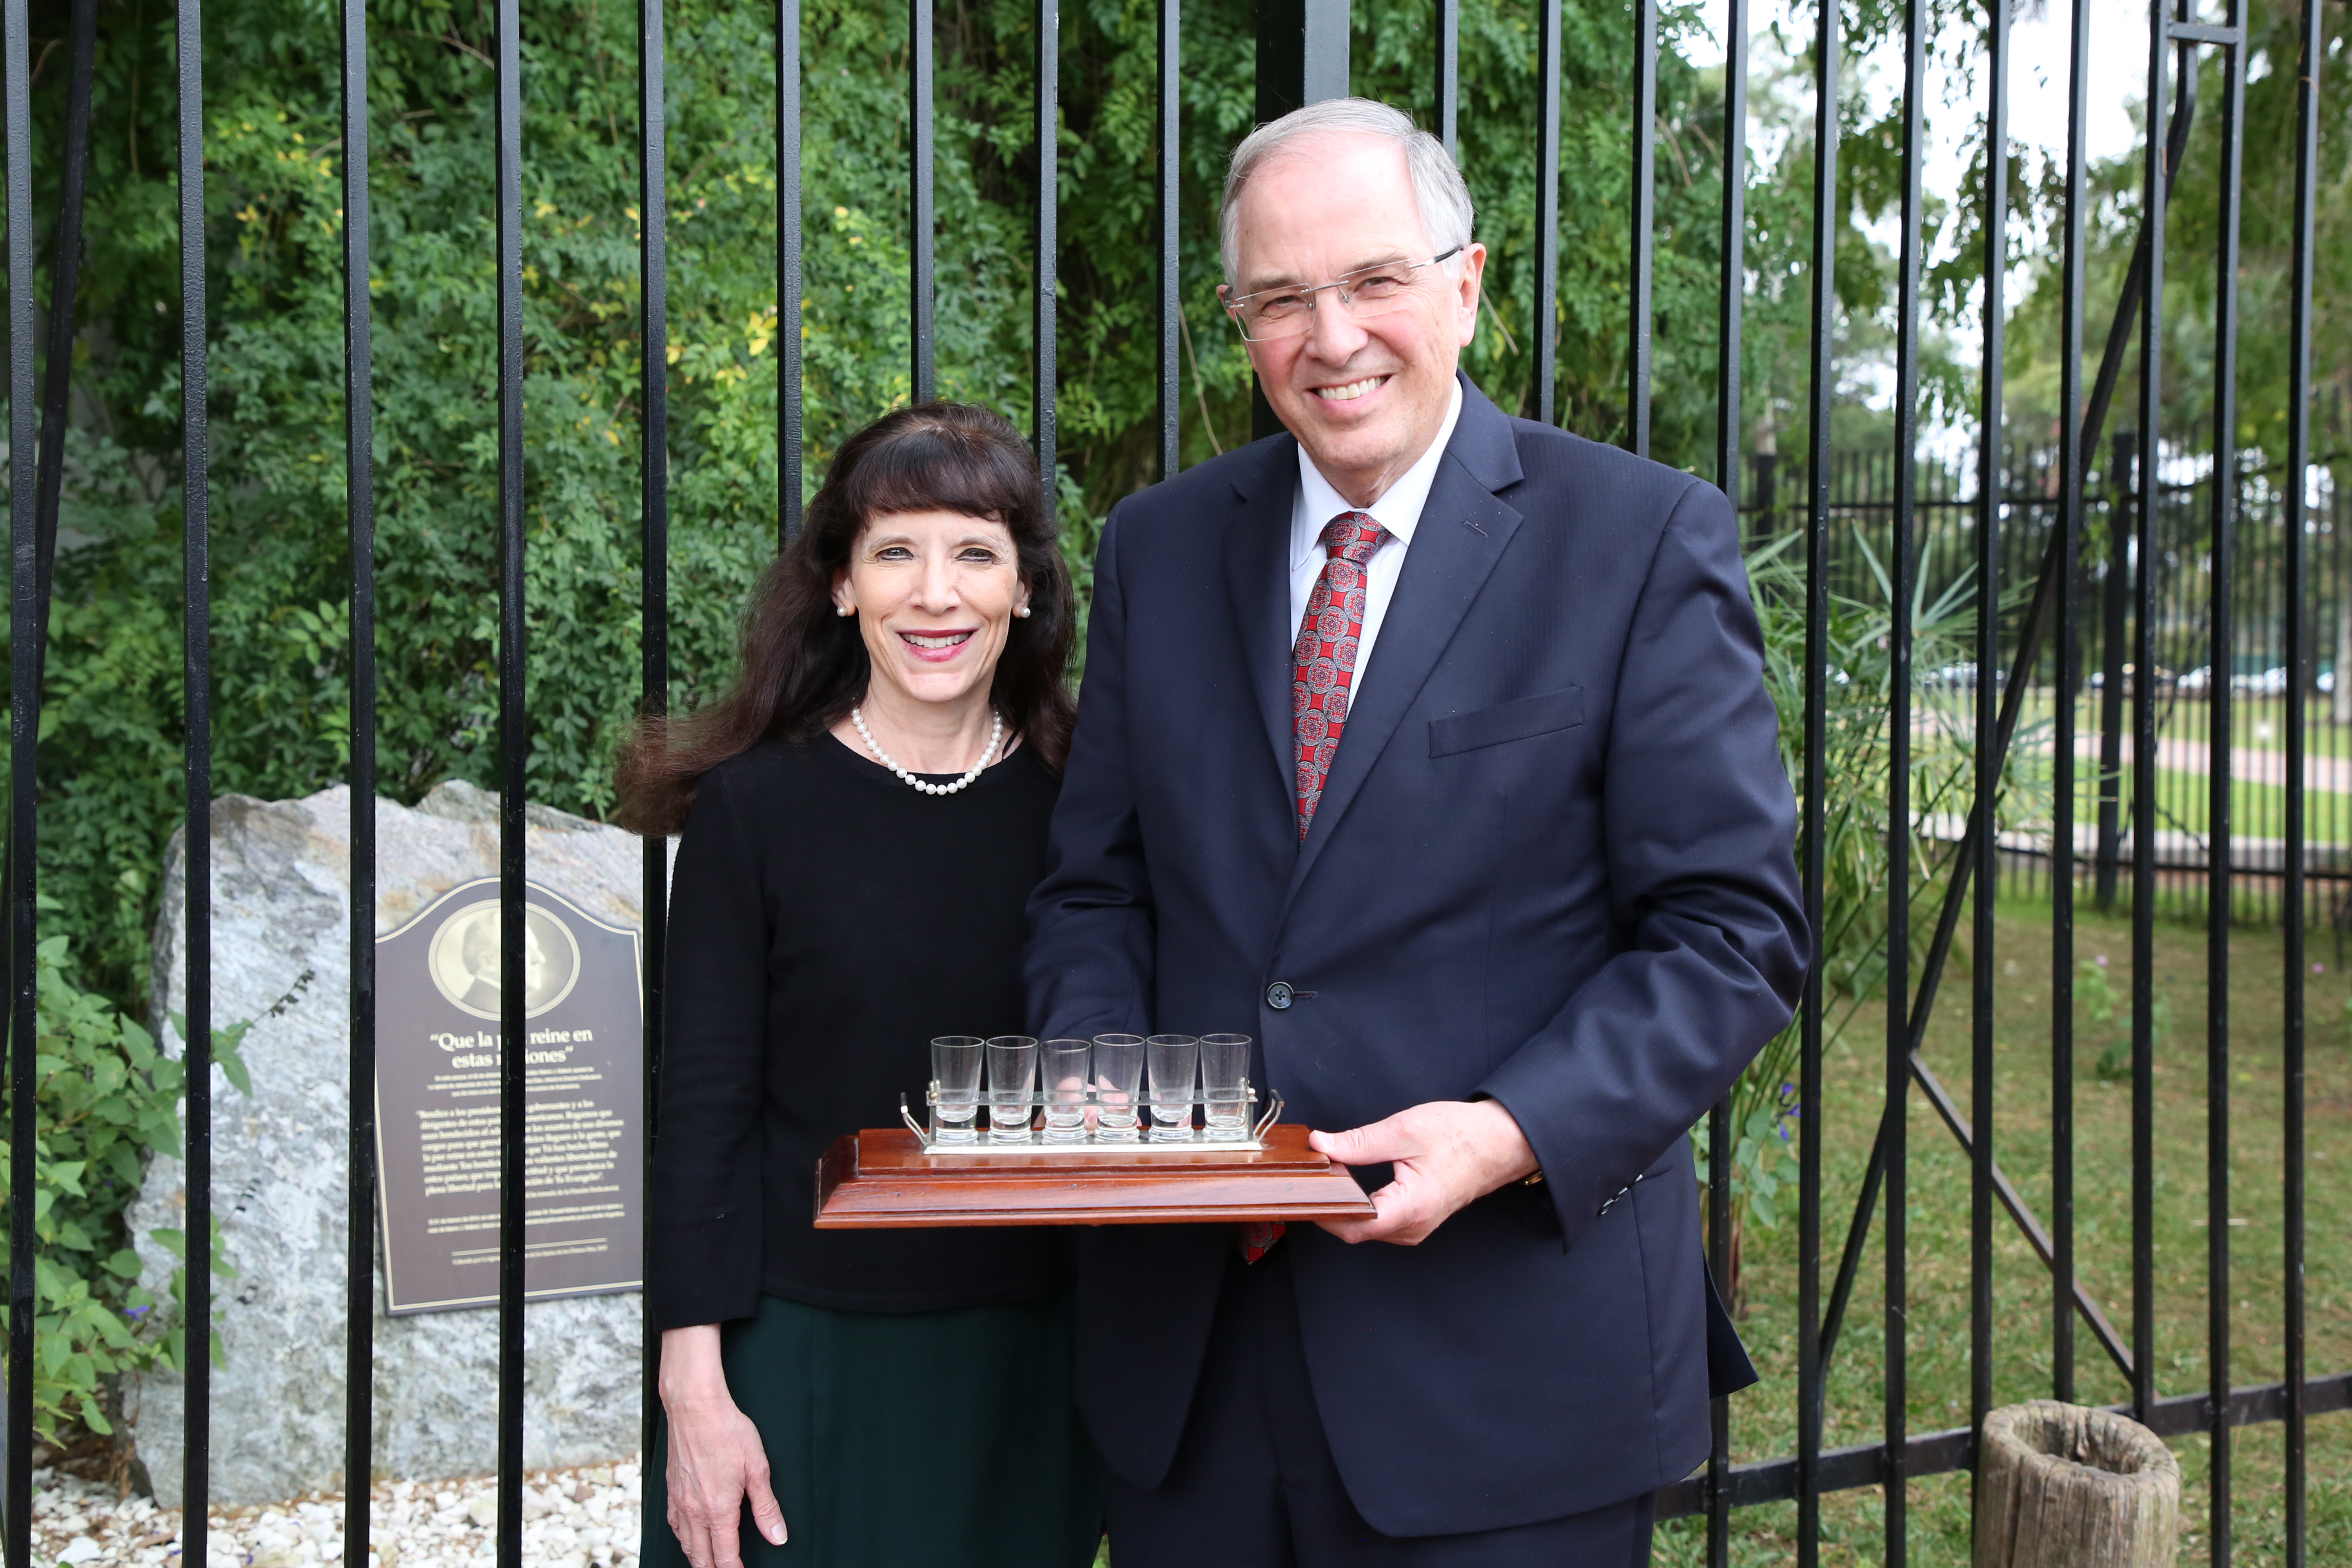 Elder Neil L. Andersen of the Quorum of the Twelve Apostles and Sister Kathy Andersen in Buenos Aires, Argentina, visit the spot where Elder Melvin J. Ballard blessed the land of South America in 1925. In Elder Andersen's hands is a book of history, including the decision in 1925 to open the South American Mission.